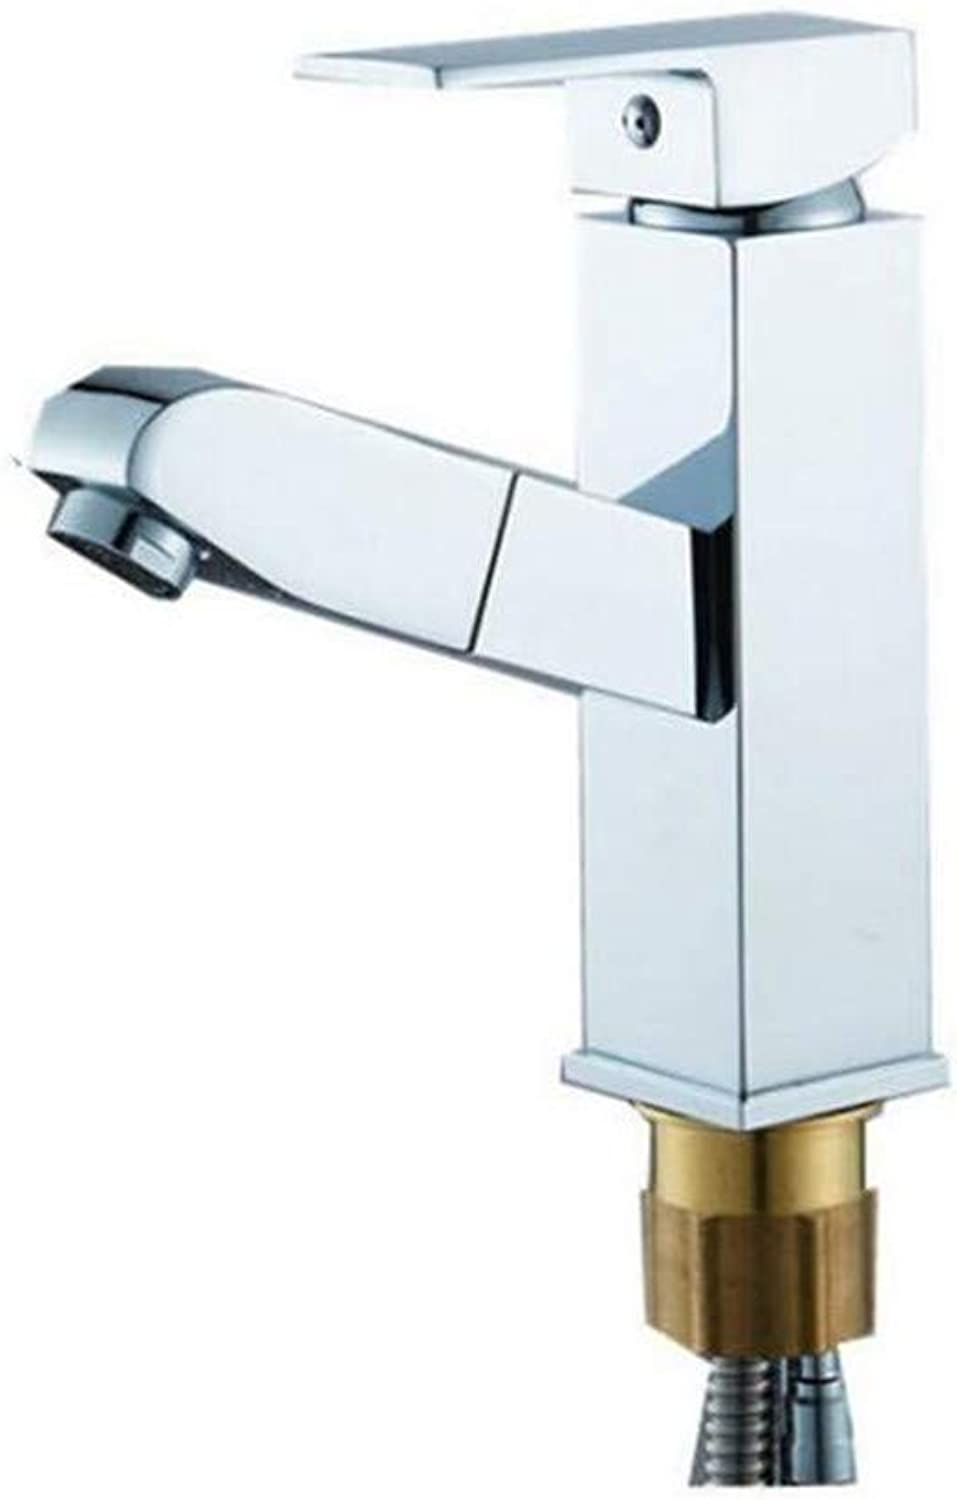 Kitchen Bath Basin Sink Bathroom Taps Kitchen Sink Taps Bathroom Taps Faucet Bathroom Cold and Hot Mixed Faucet Ctzl7198